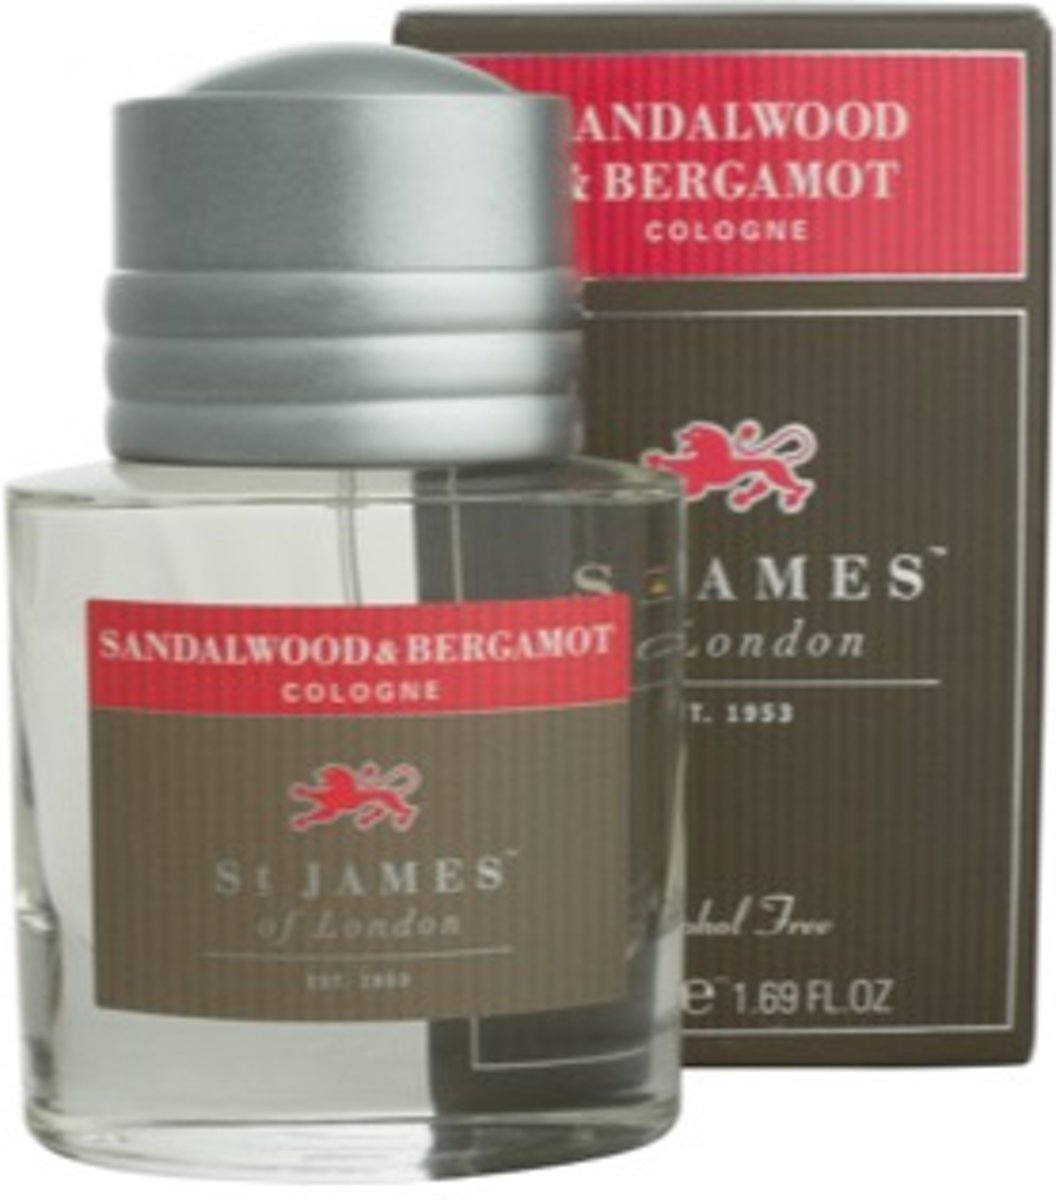 St James of London Cologne Sandalwood & Bergamot